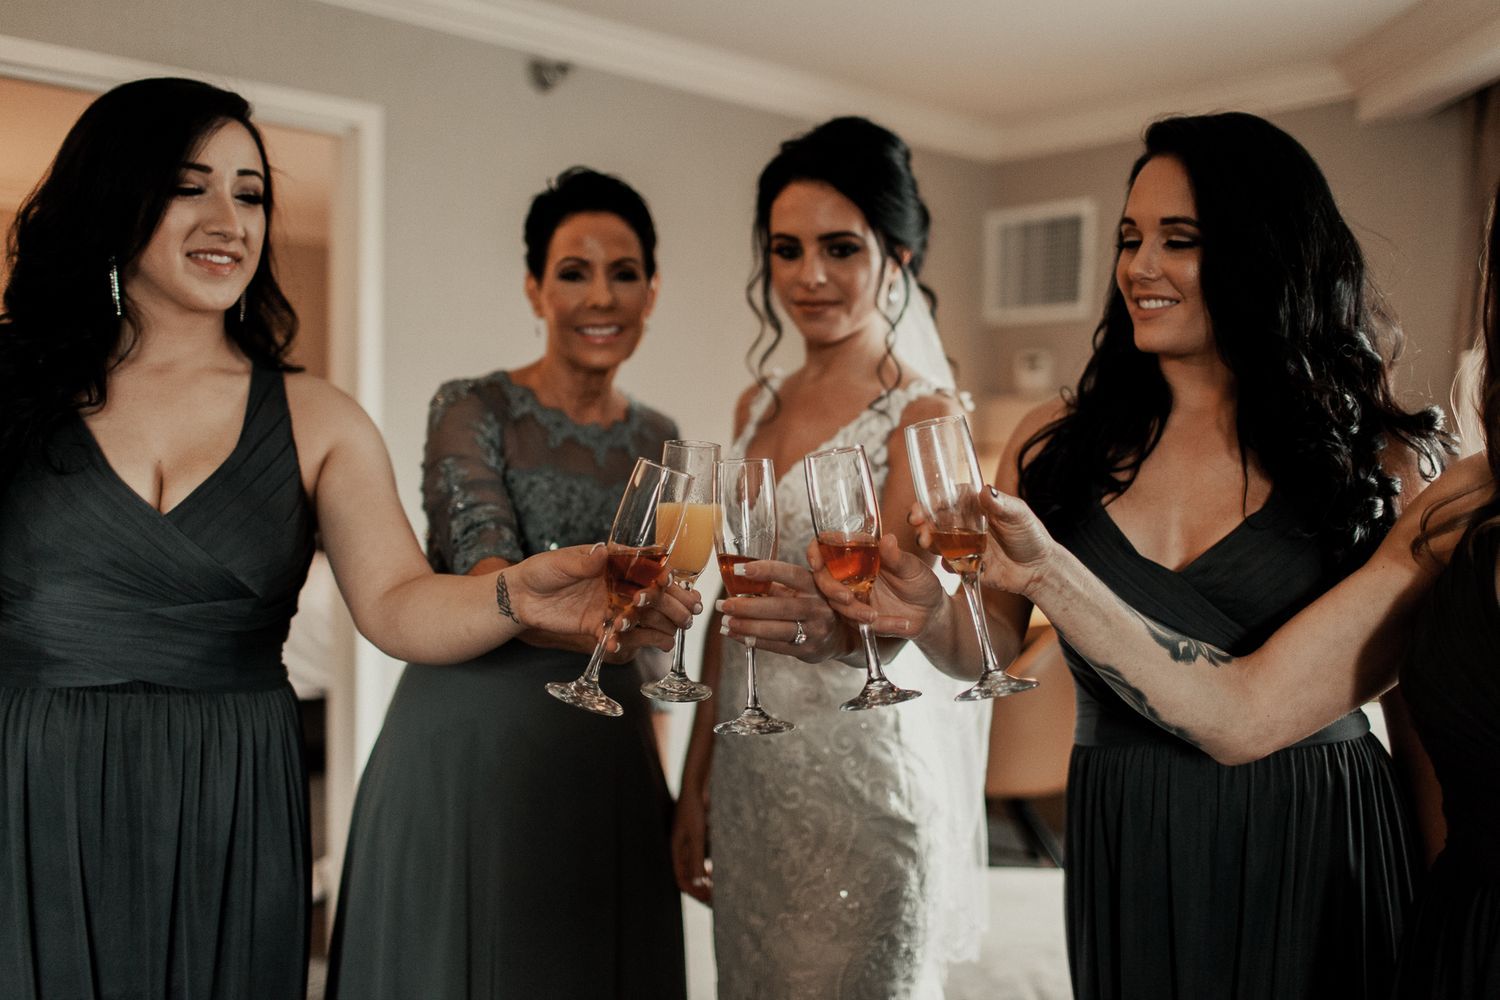 bride and bridal party cheer-sing drinks